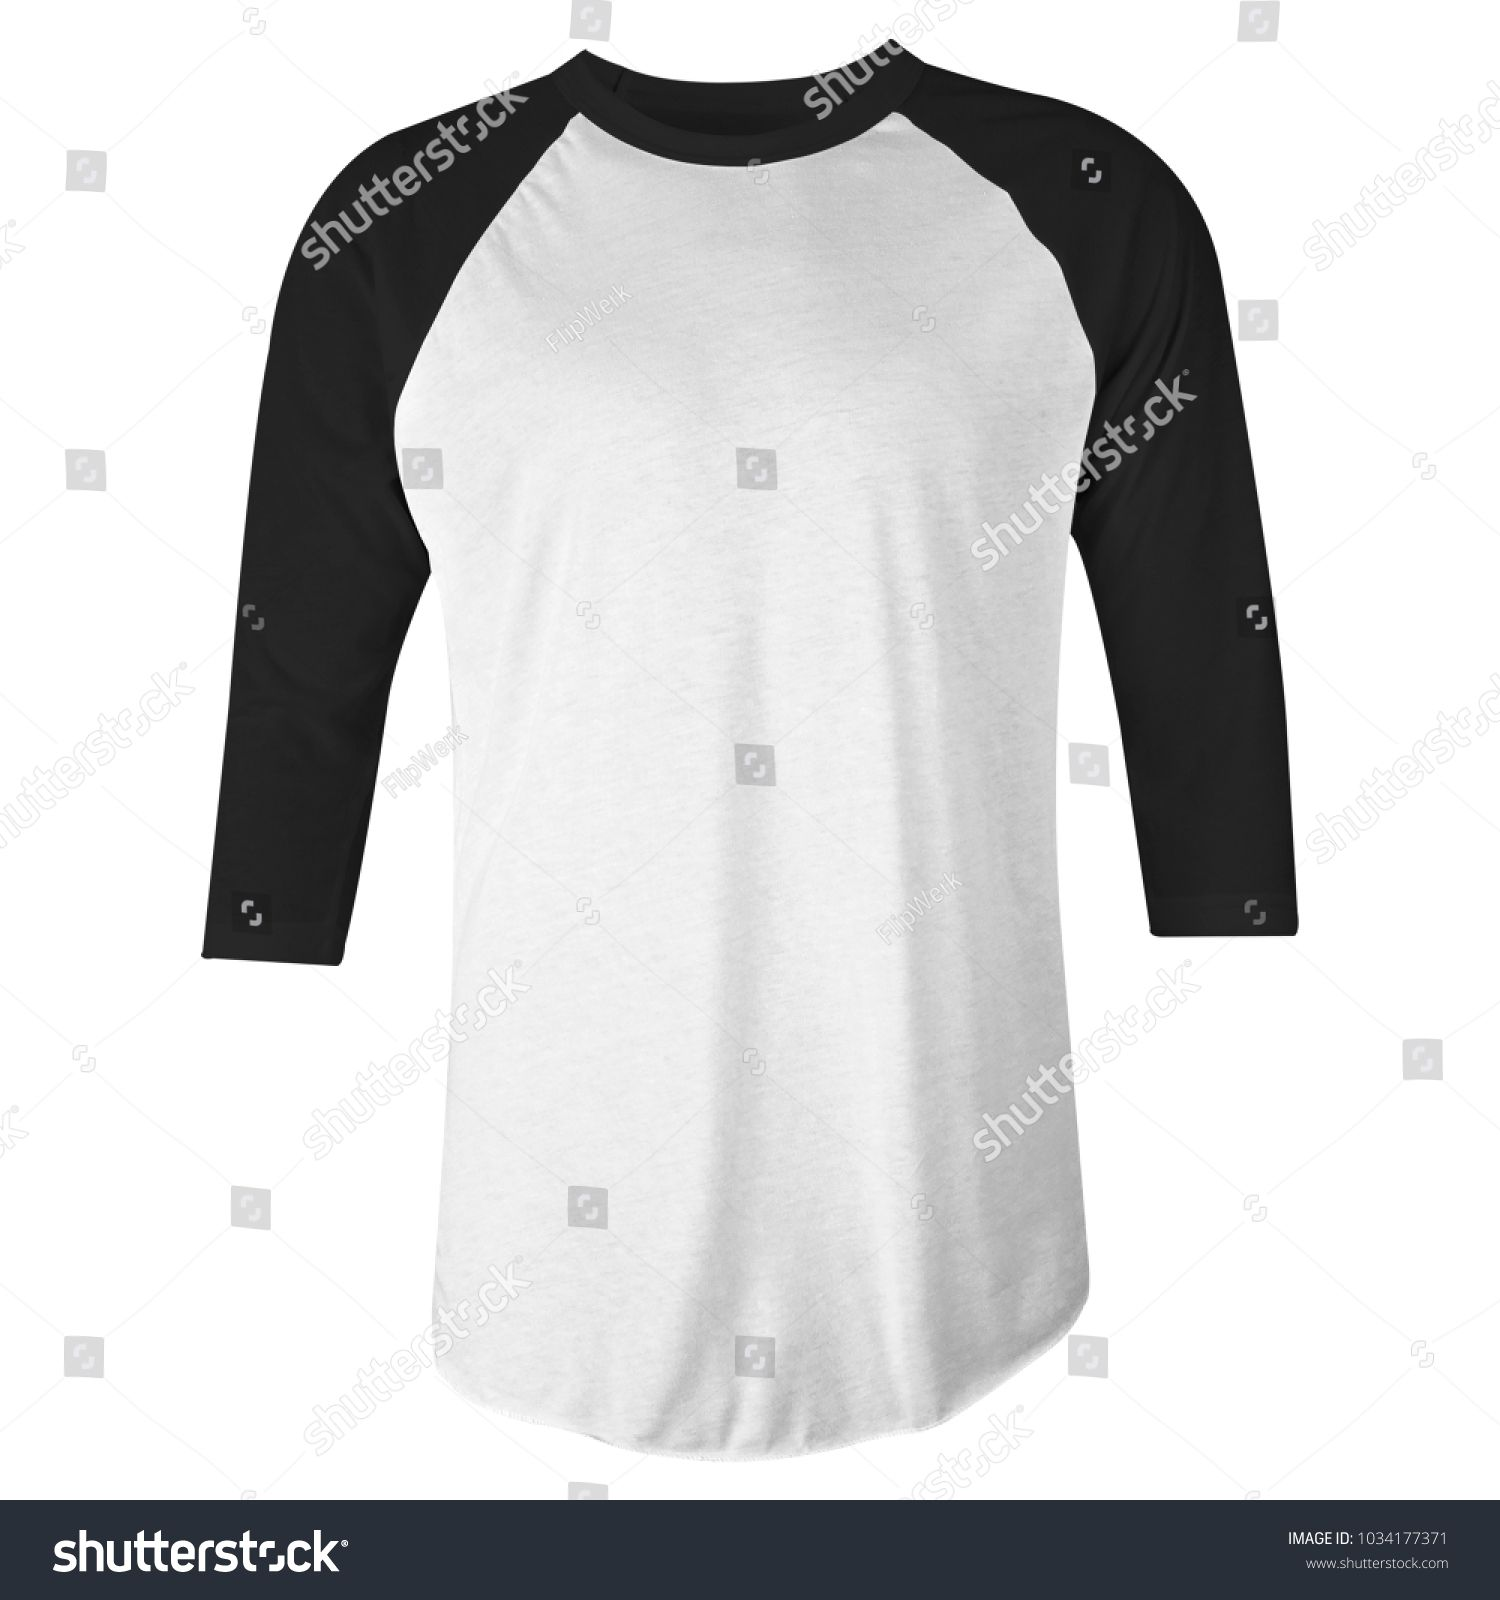 Download Blank T Shirt Black White Raglan 3 4 Sleeves Front View For Mockup Template Isolated White Raglan Black Blank Blank T Shirts Long Sleeve Tshirt Men T Shirt